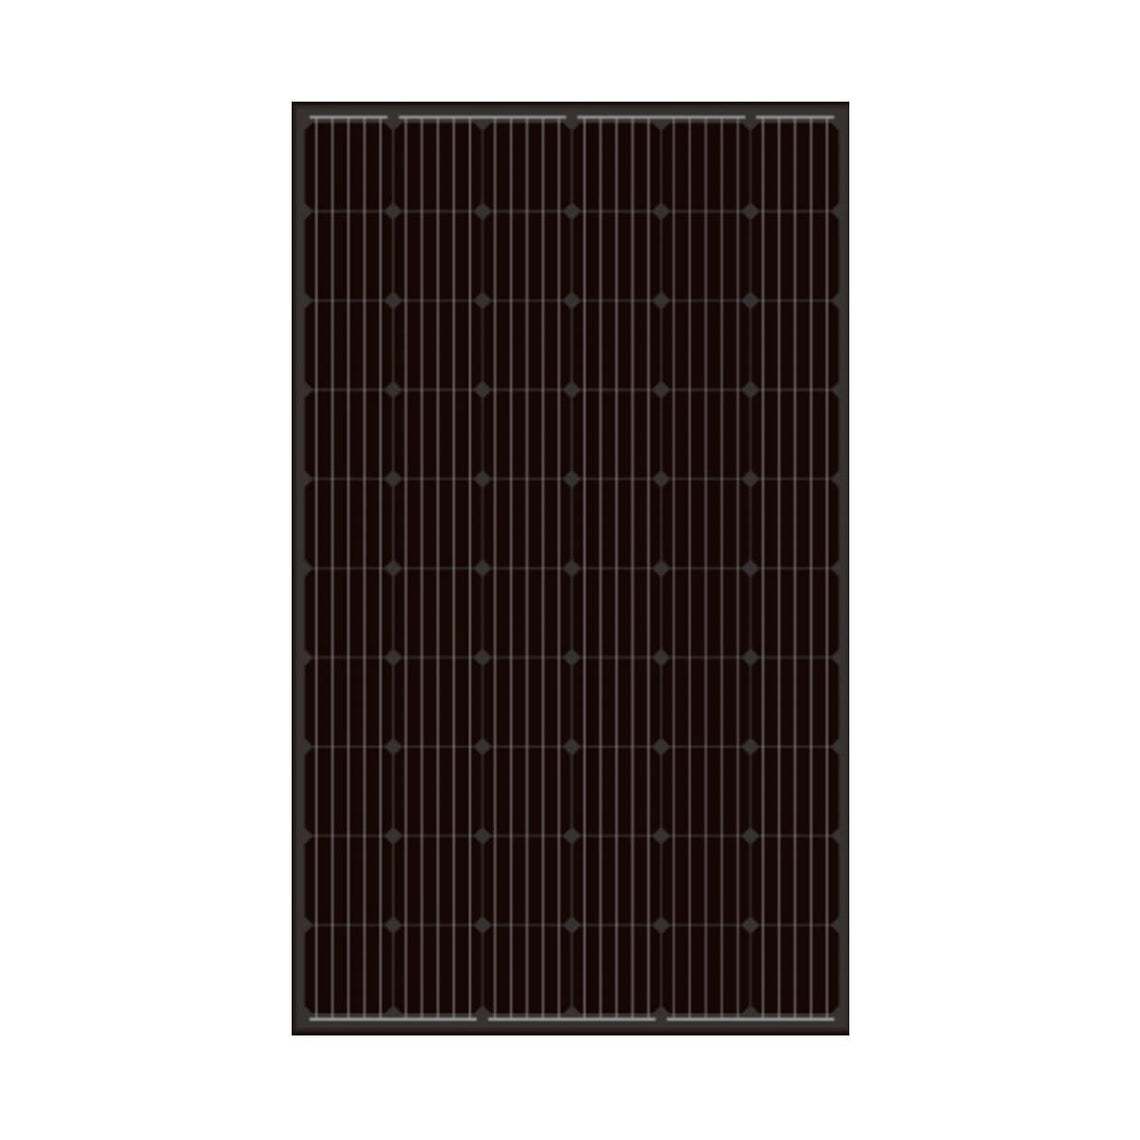 V-Sun Solar 310W Mono 60 Cell Black Solar Panel  (VSUN310-60M-BB)